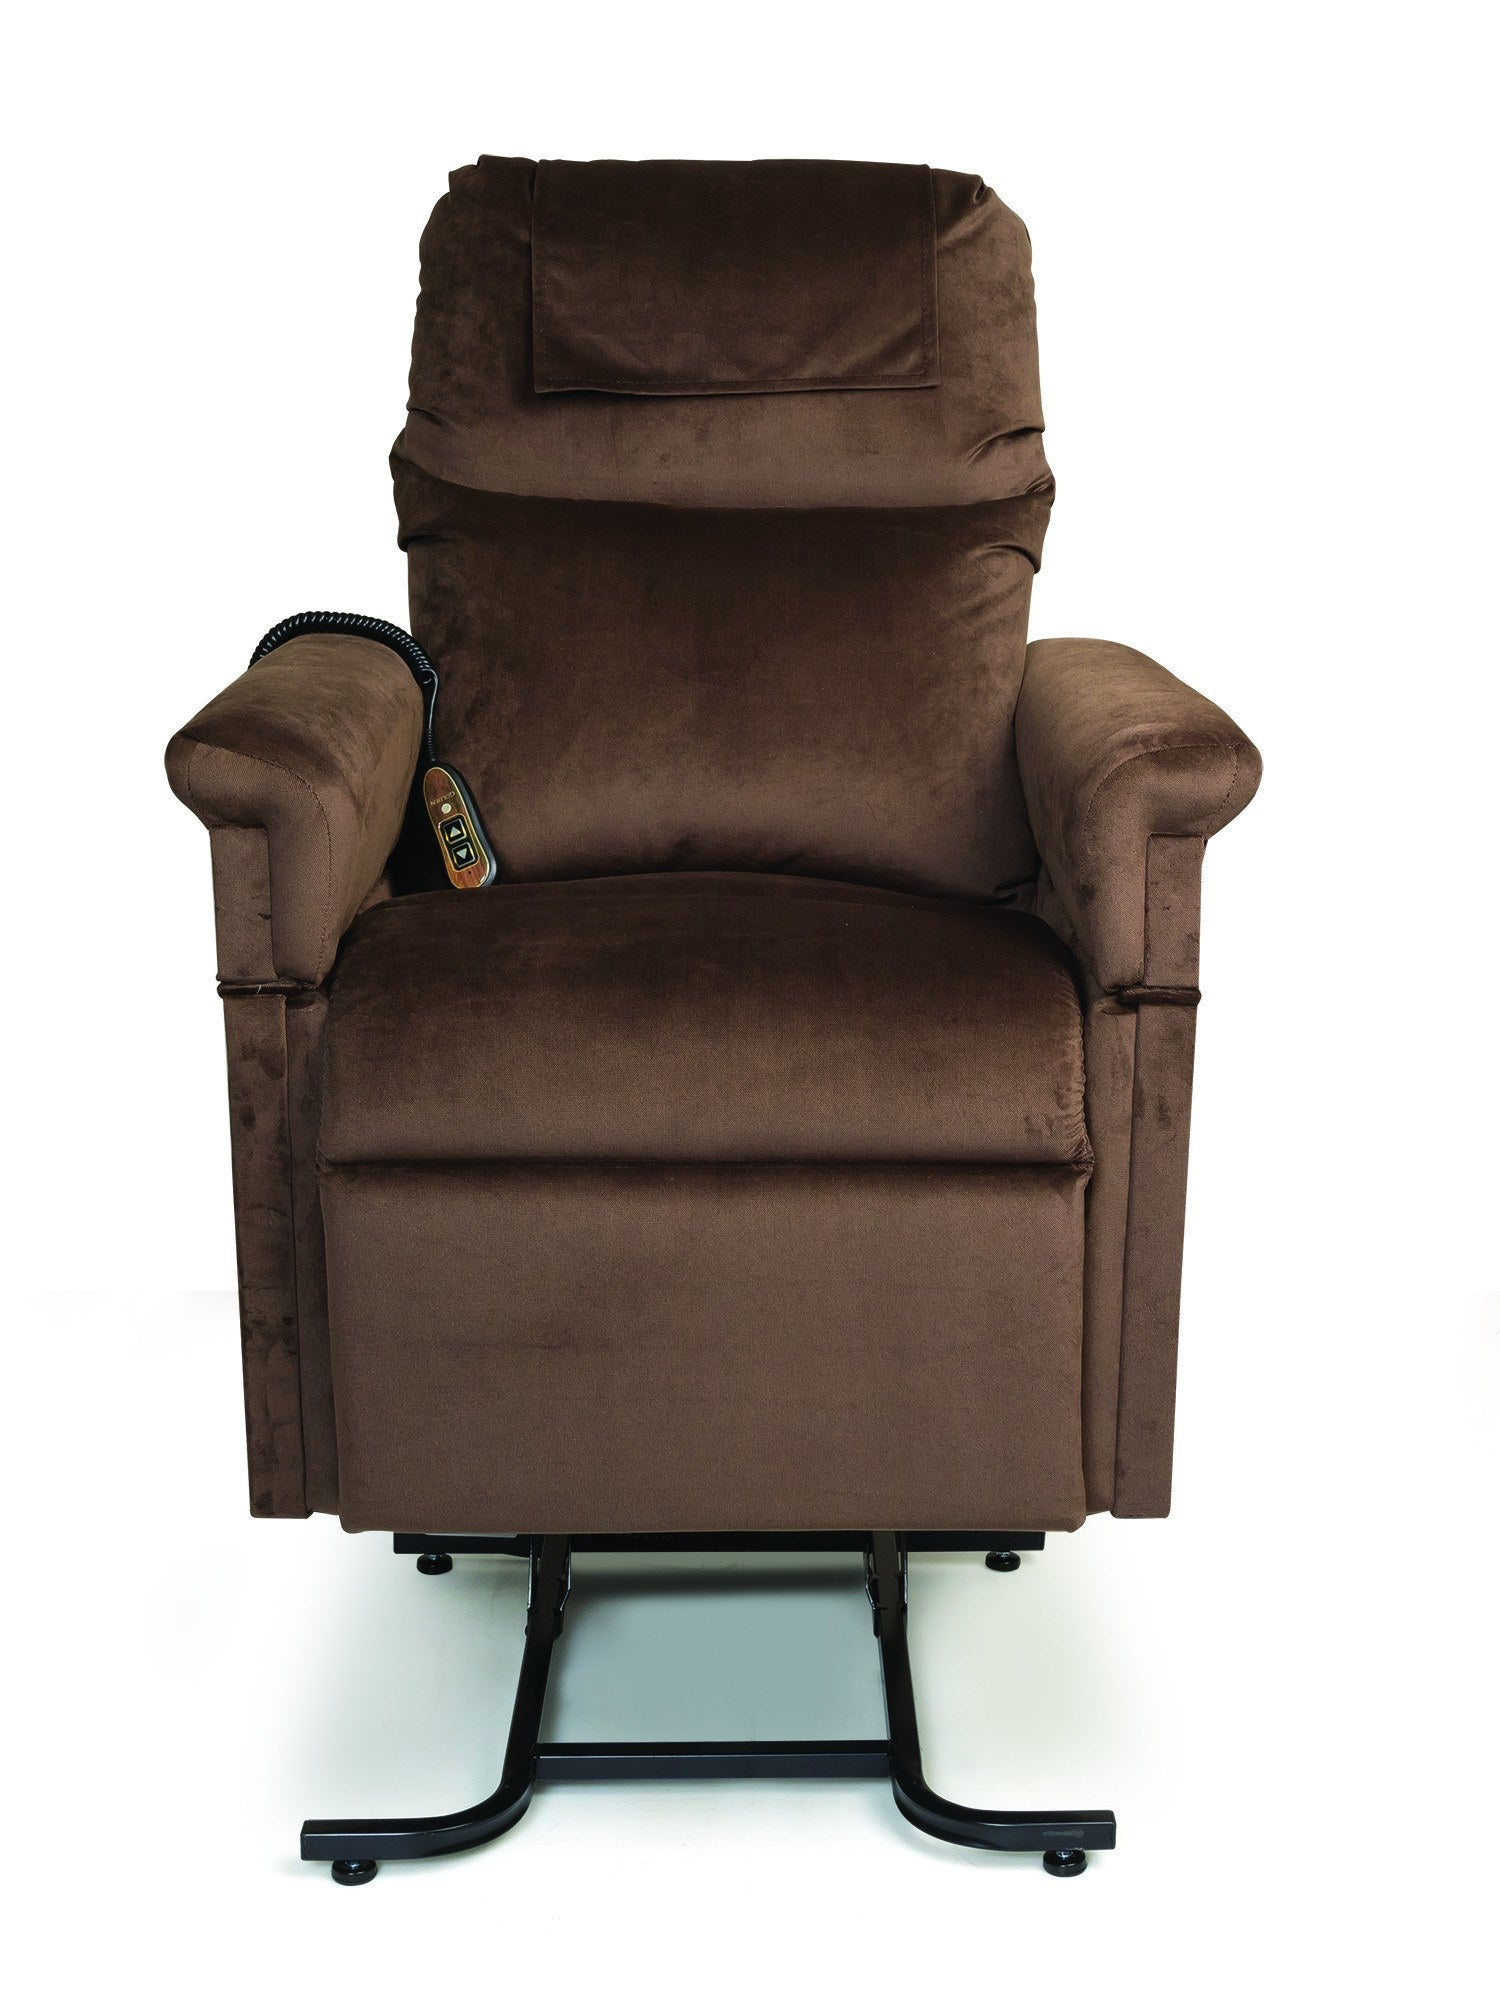 categories category chair golden product the home comforter technologies medium for lift mobility chairs